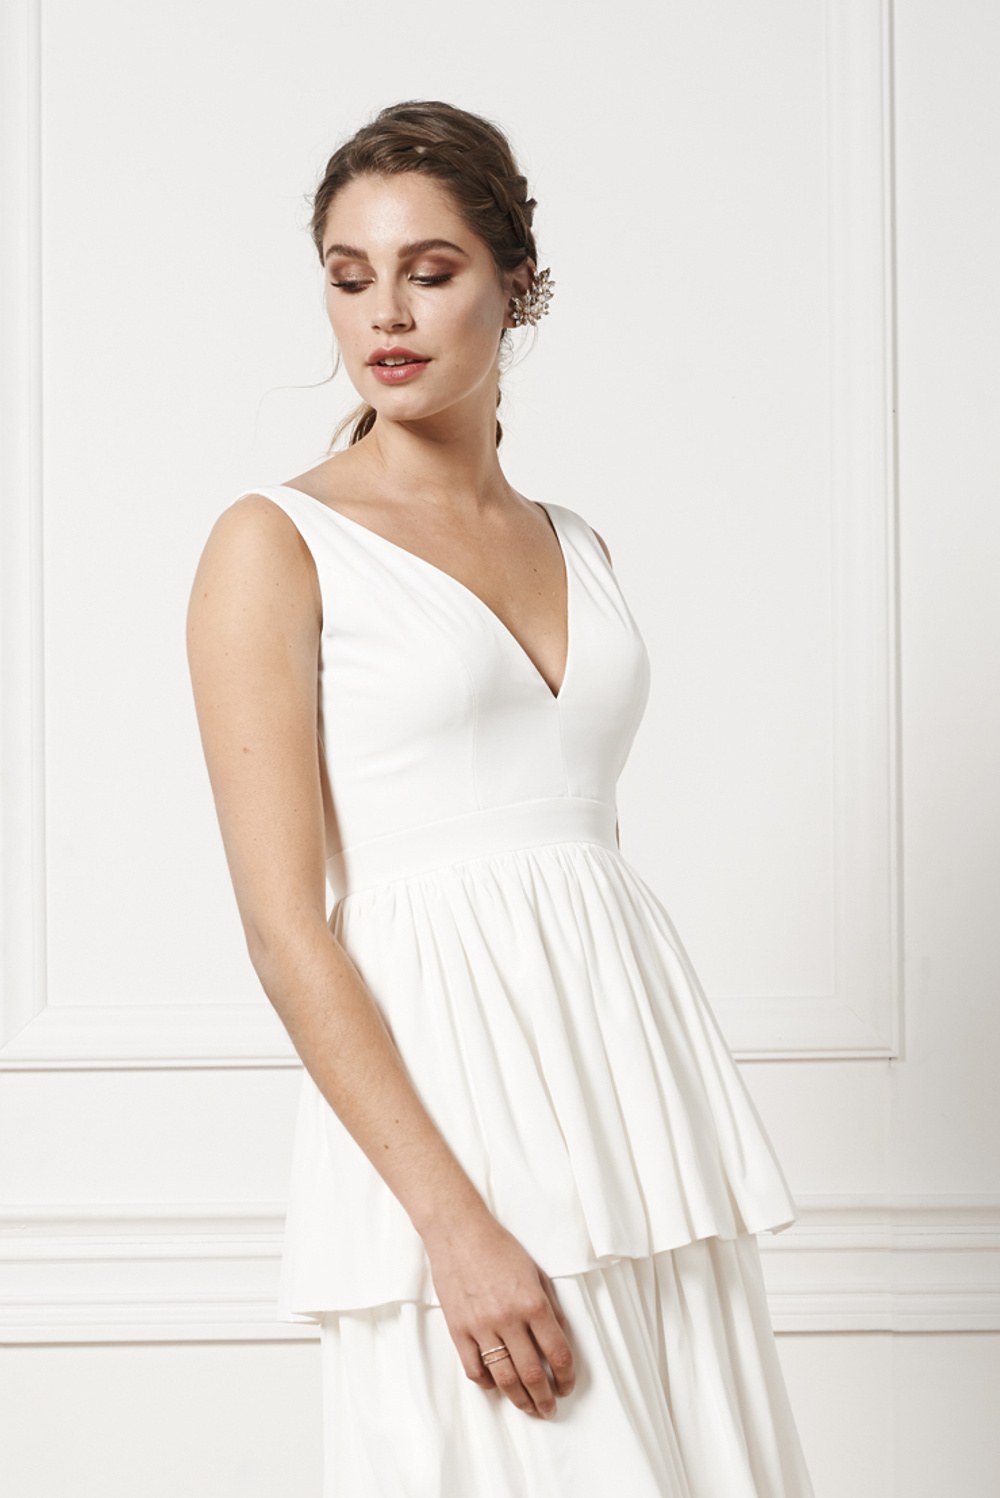 Bridal - By Malina Official | Designer Clothing & Accessories